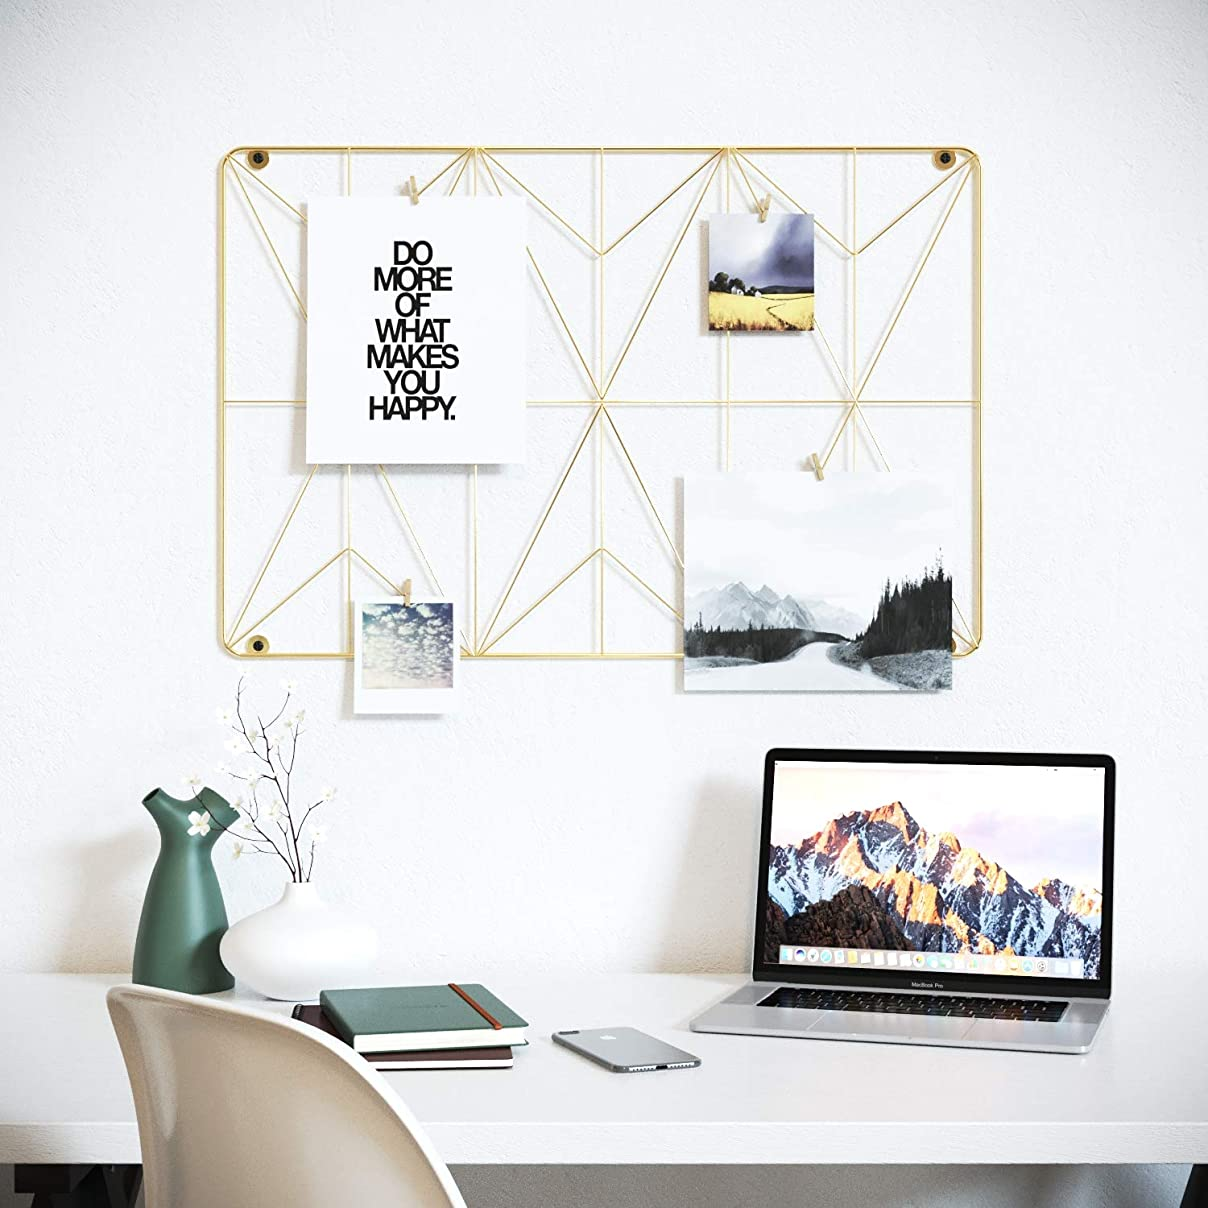 Cevillo Stylish Wire Metal Wall Grid Panel – Perfect as Photo Frame, Office Organization – Gold Multi-Functional Wall Storage Display (Gold | Rectangle) tb68811962939